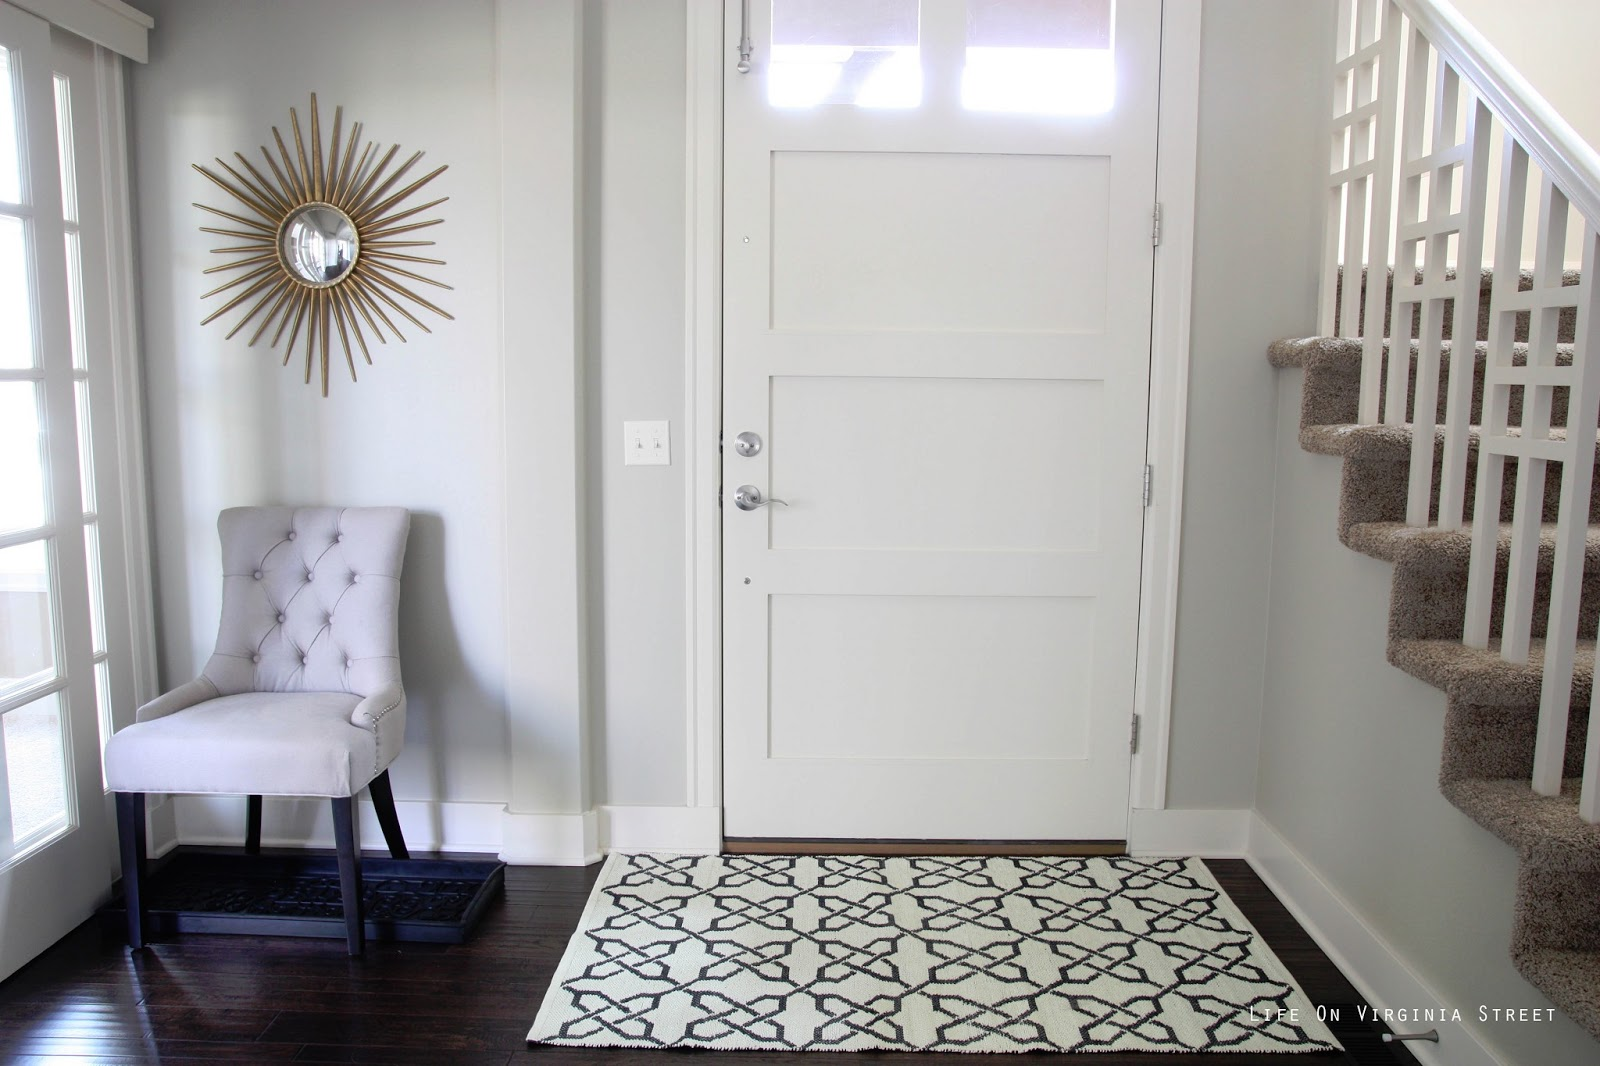 Entryway Foyer Rug : A sunnier entryway life on virginia street